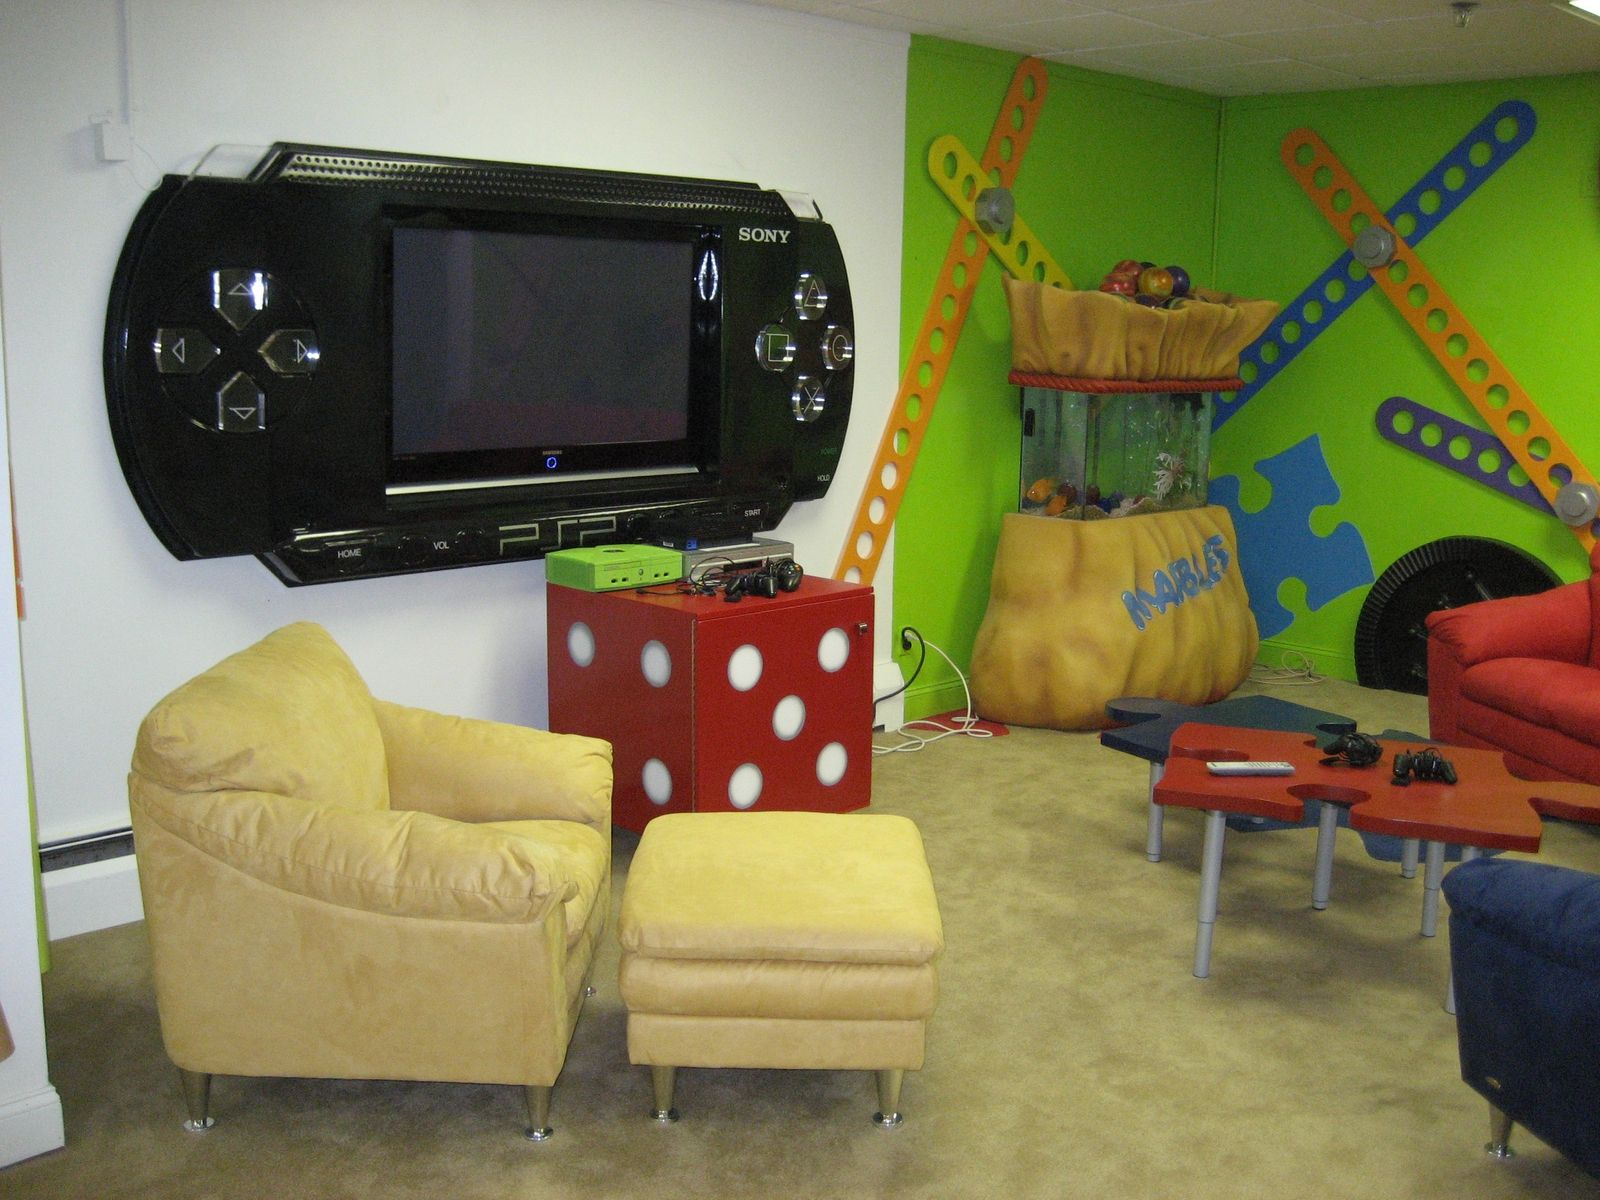 Awesome Tv Frame For The Game Room Different Designs Like Xbox